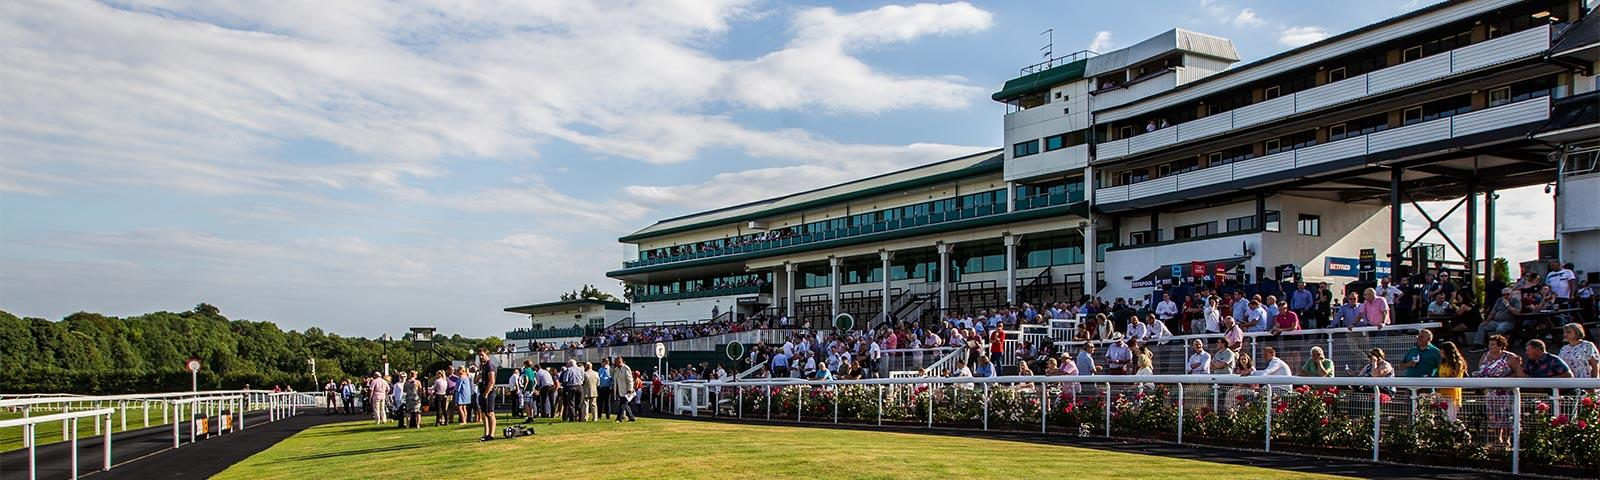 Crowds gathered at Chepstow Racecourse to watch racing.